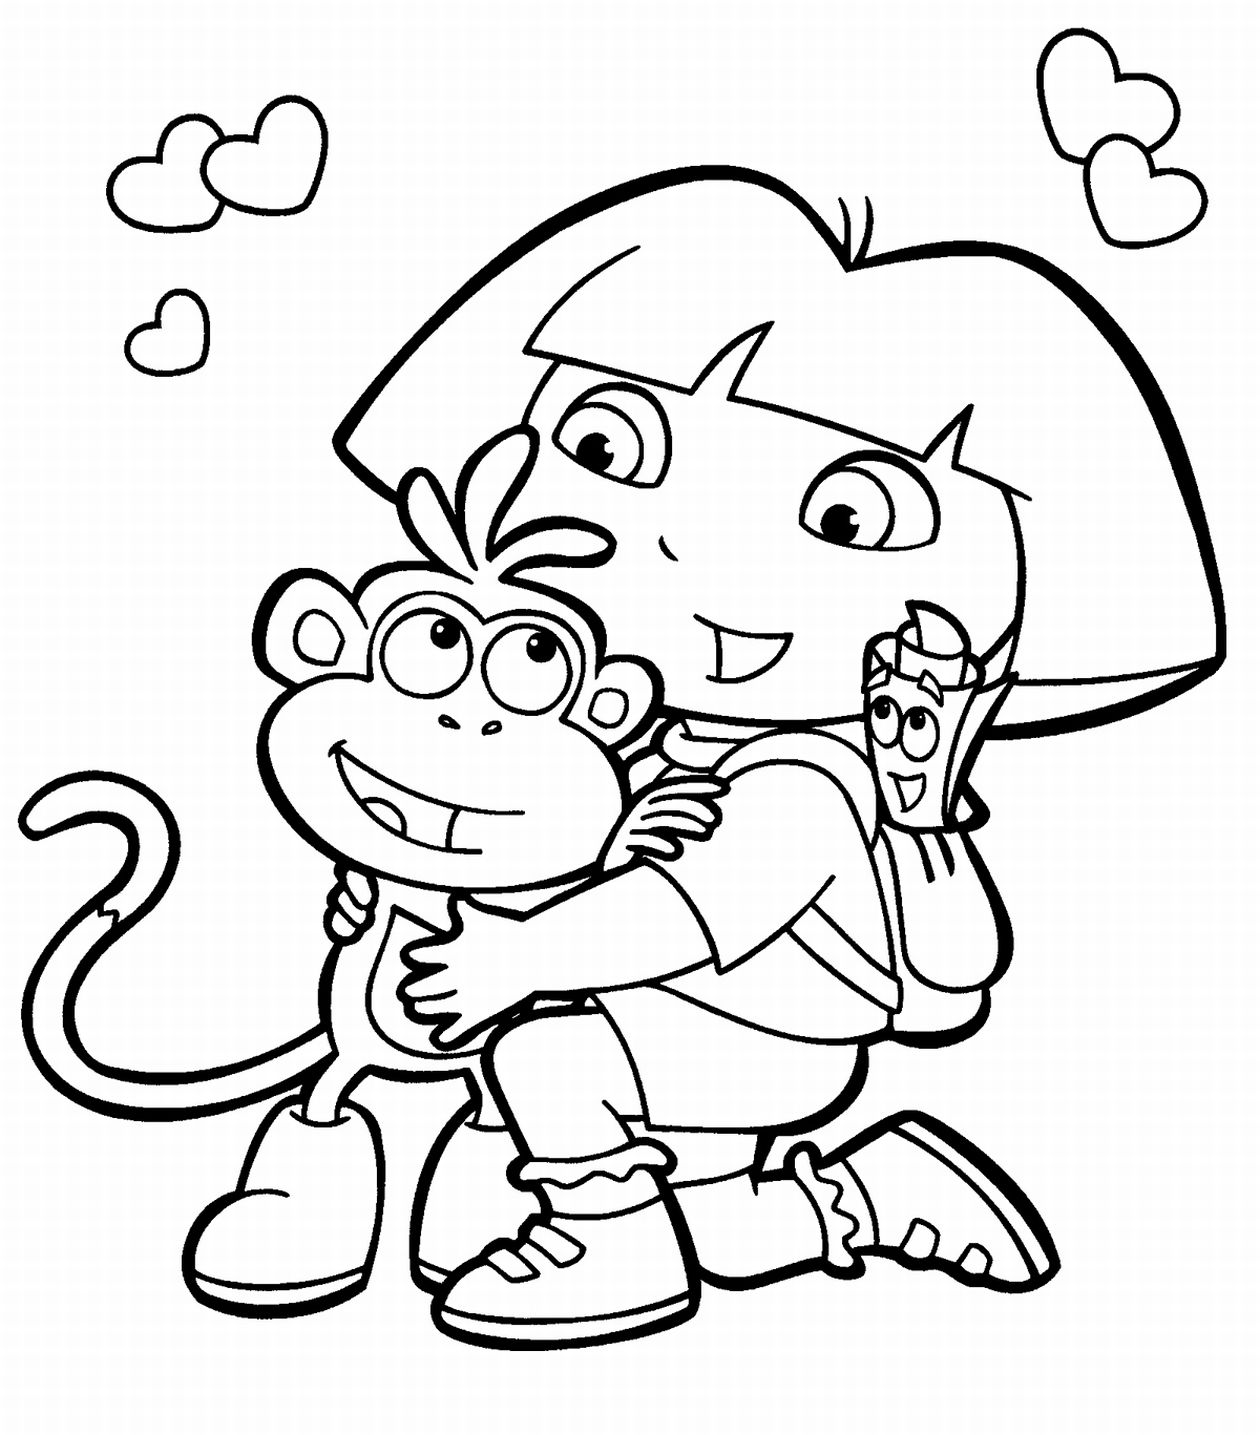 HD wallpapers coloring pages with dora